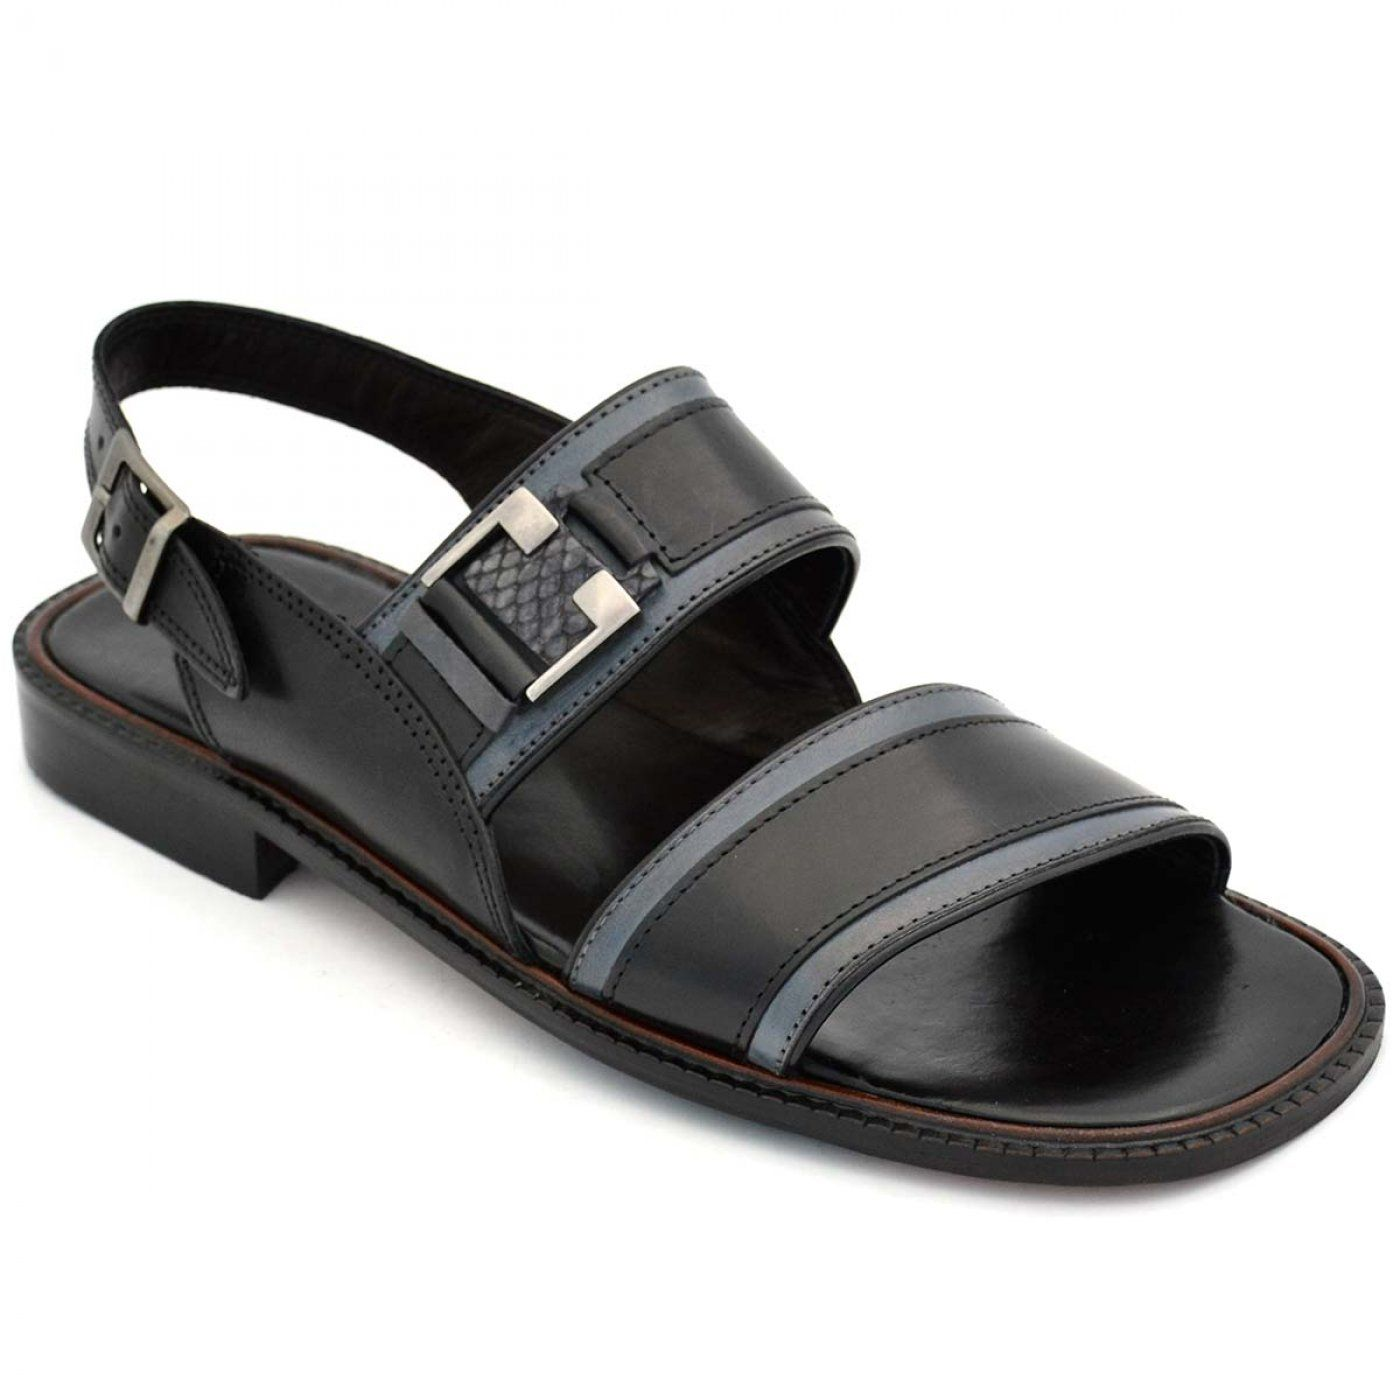 d56056ca2 Buy Online Swanky Black Leather Floater Sandal For Men